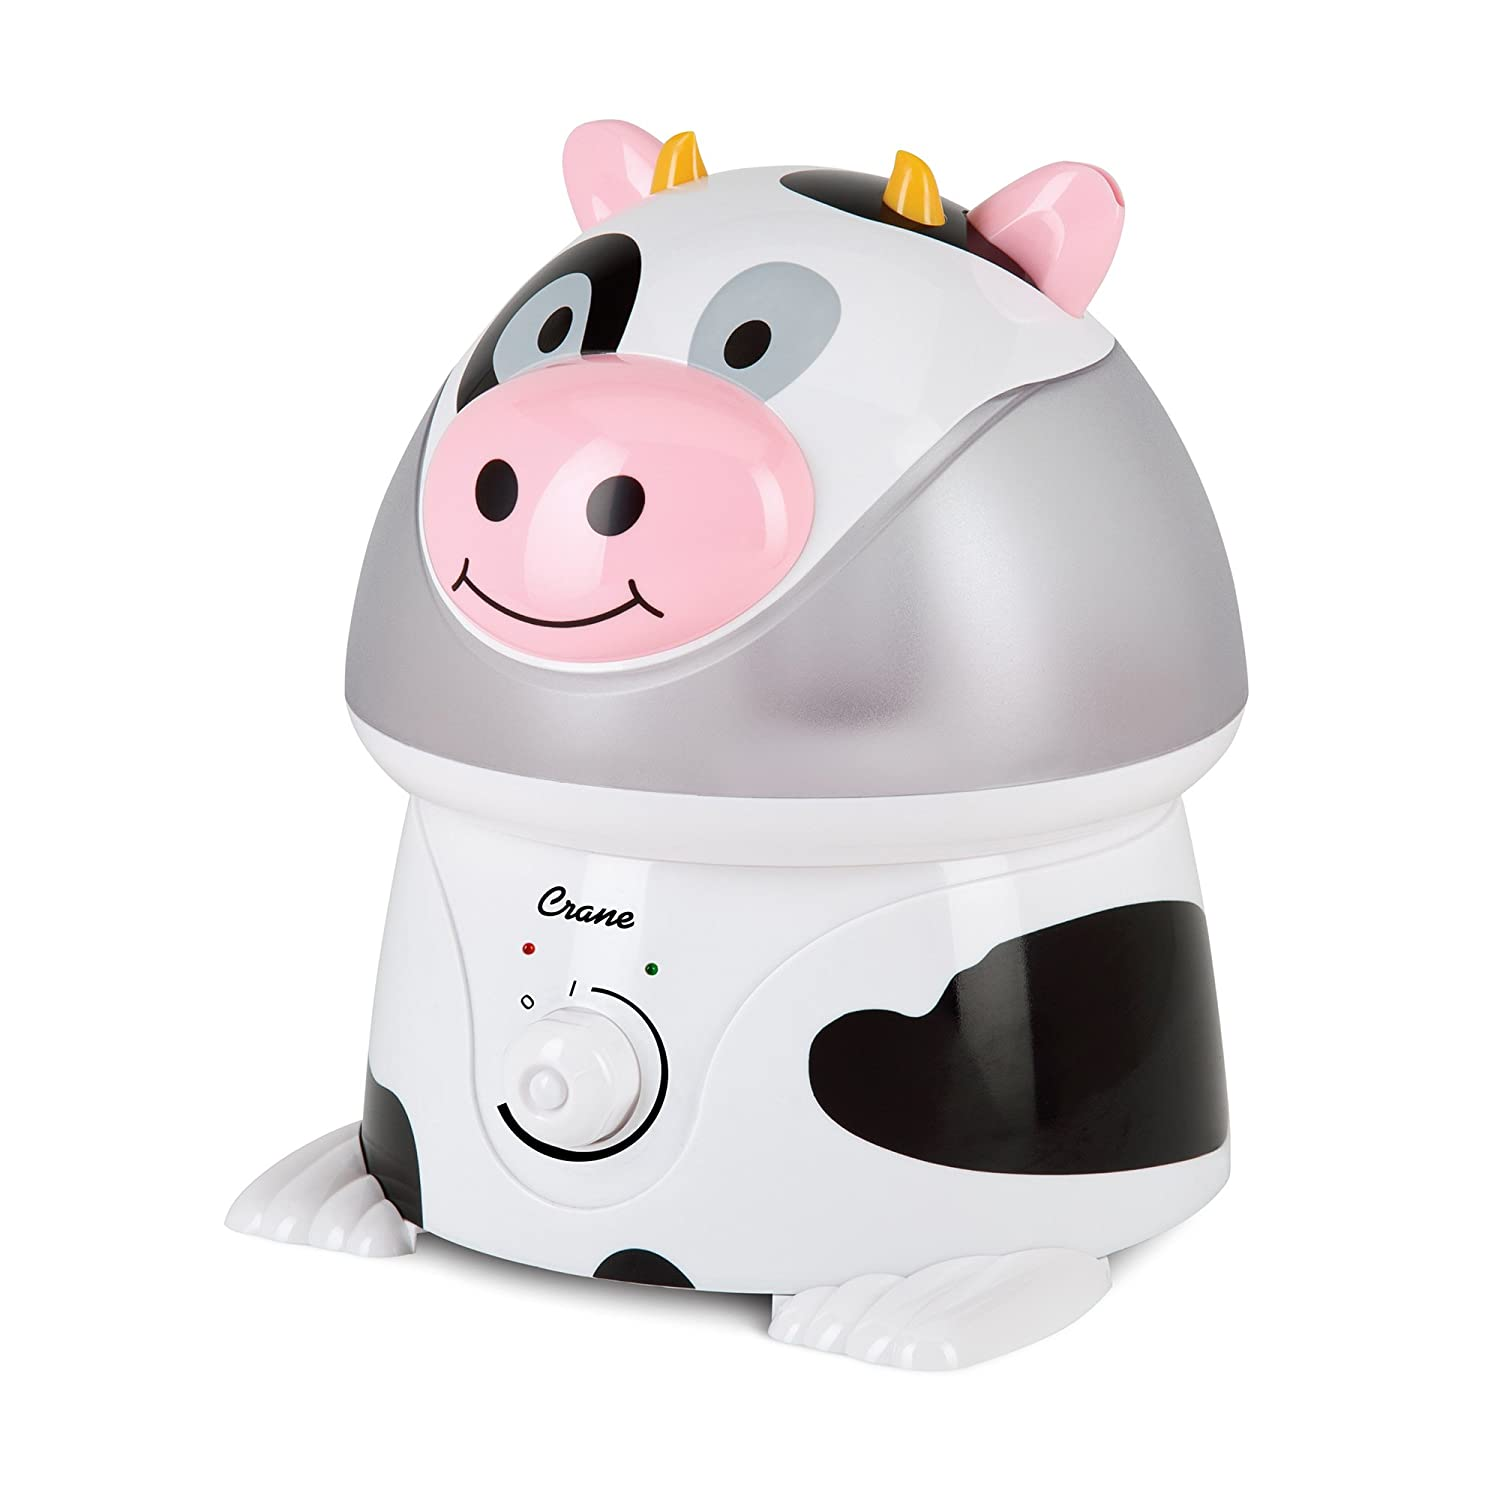 Crane Filter-Free Cool Mist Humidifiers for Kids, Cow